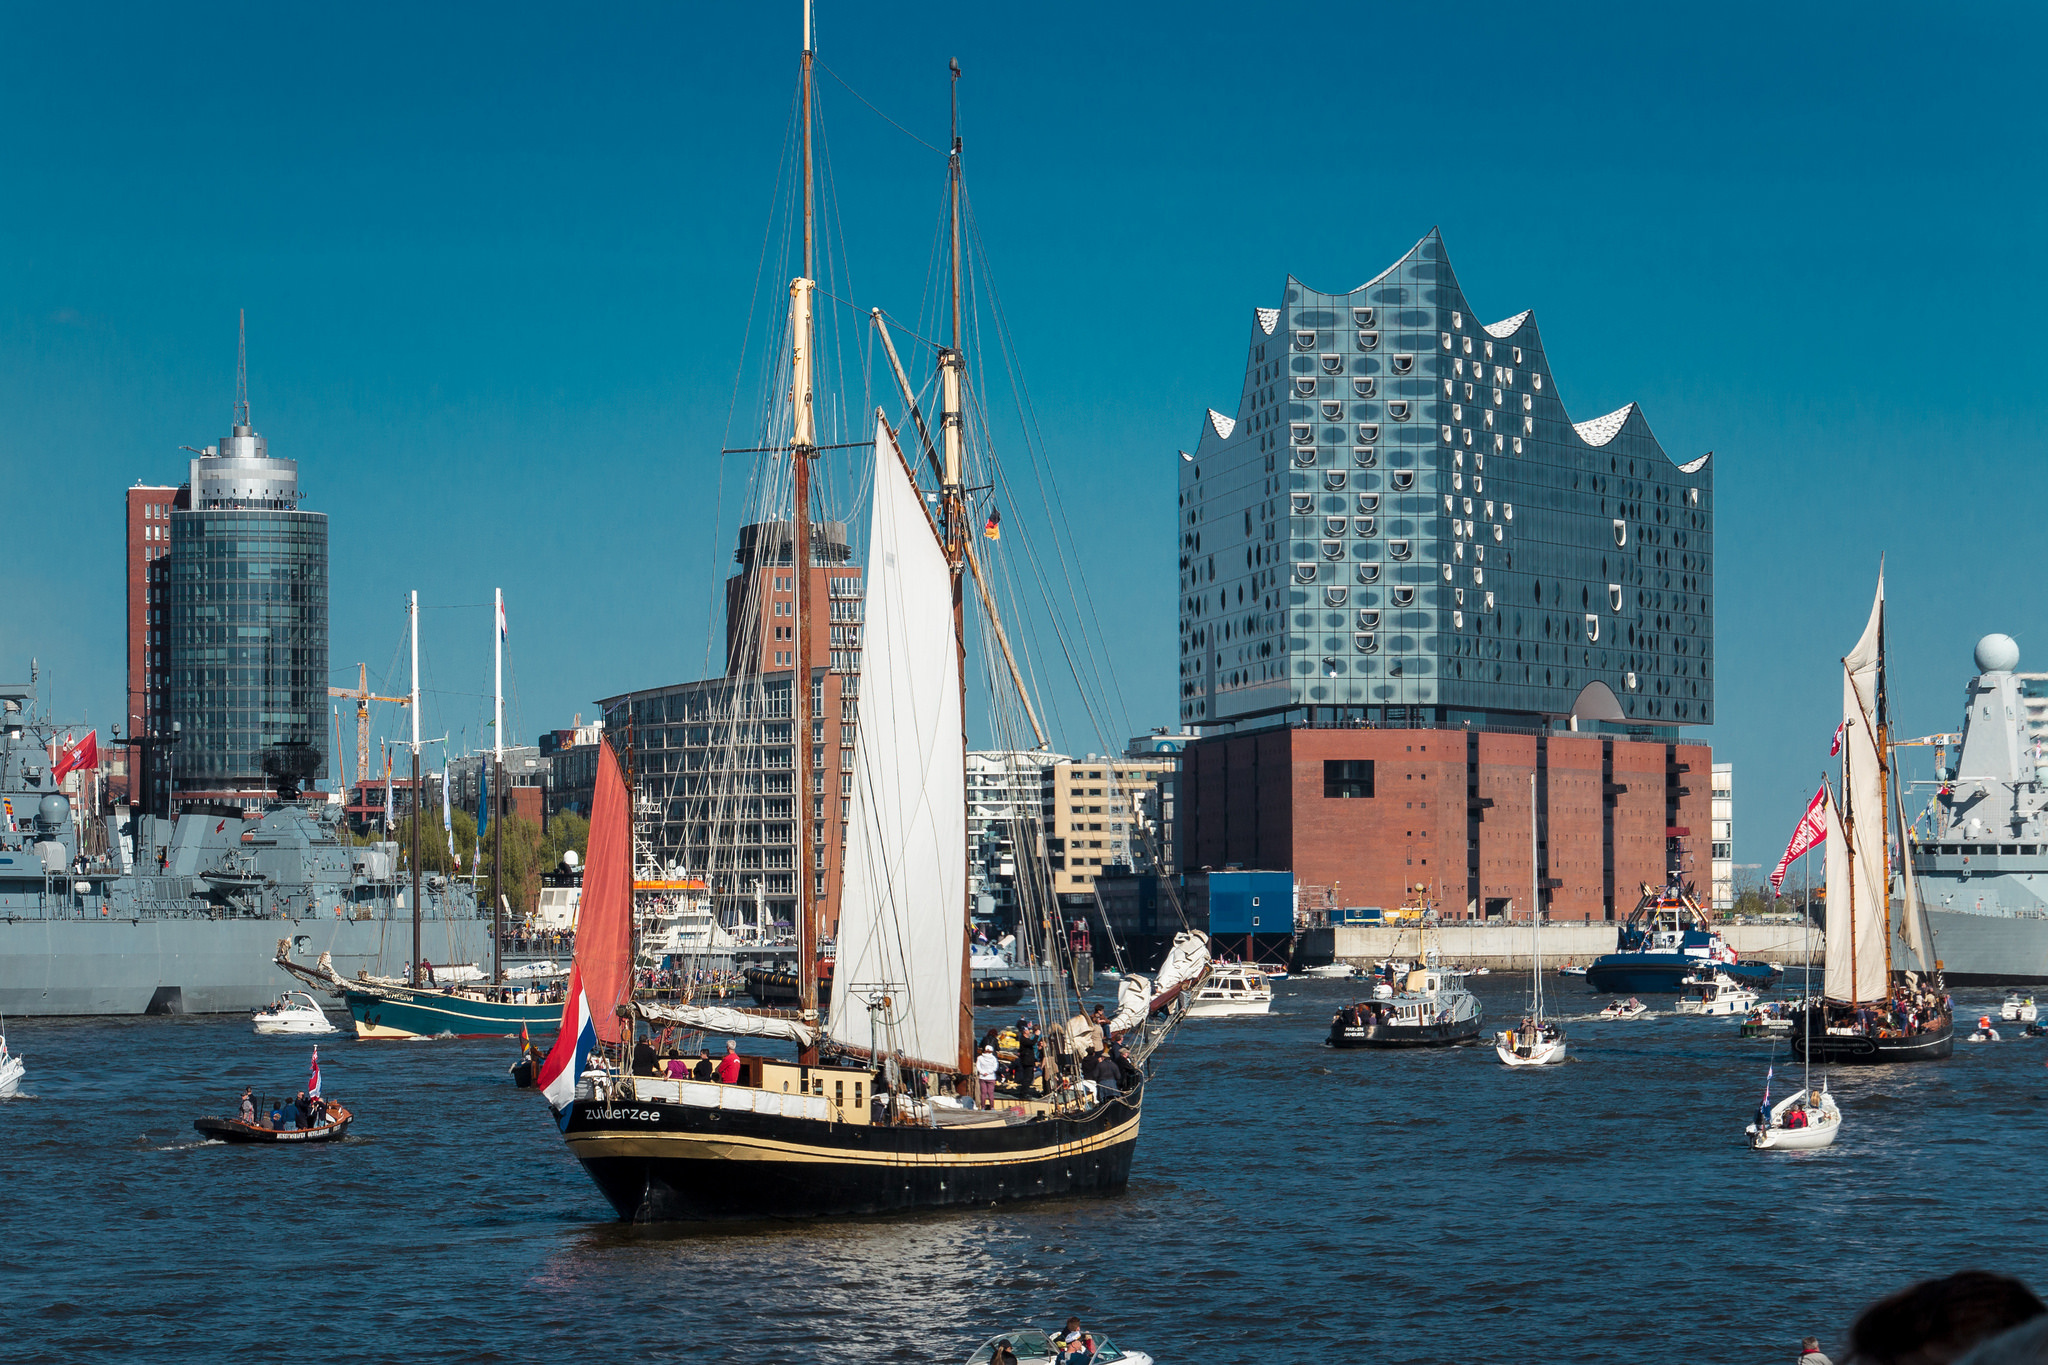 The best time to visit Hamburg